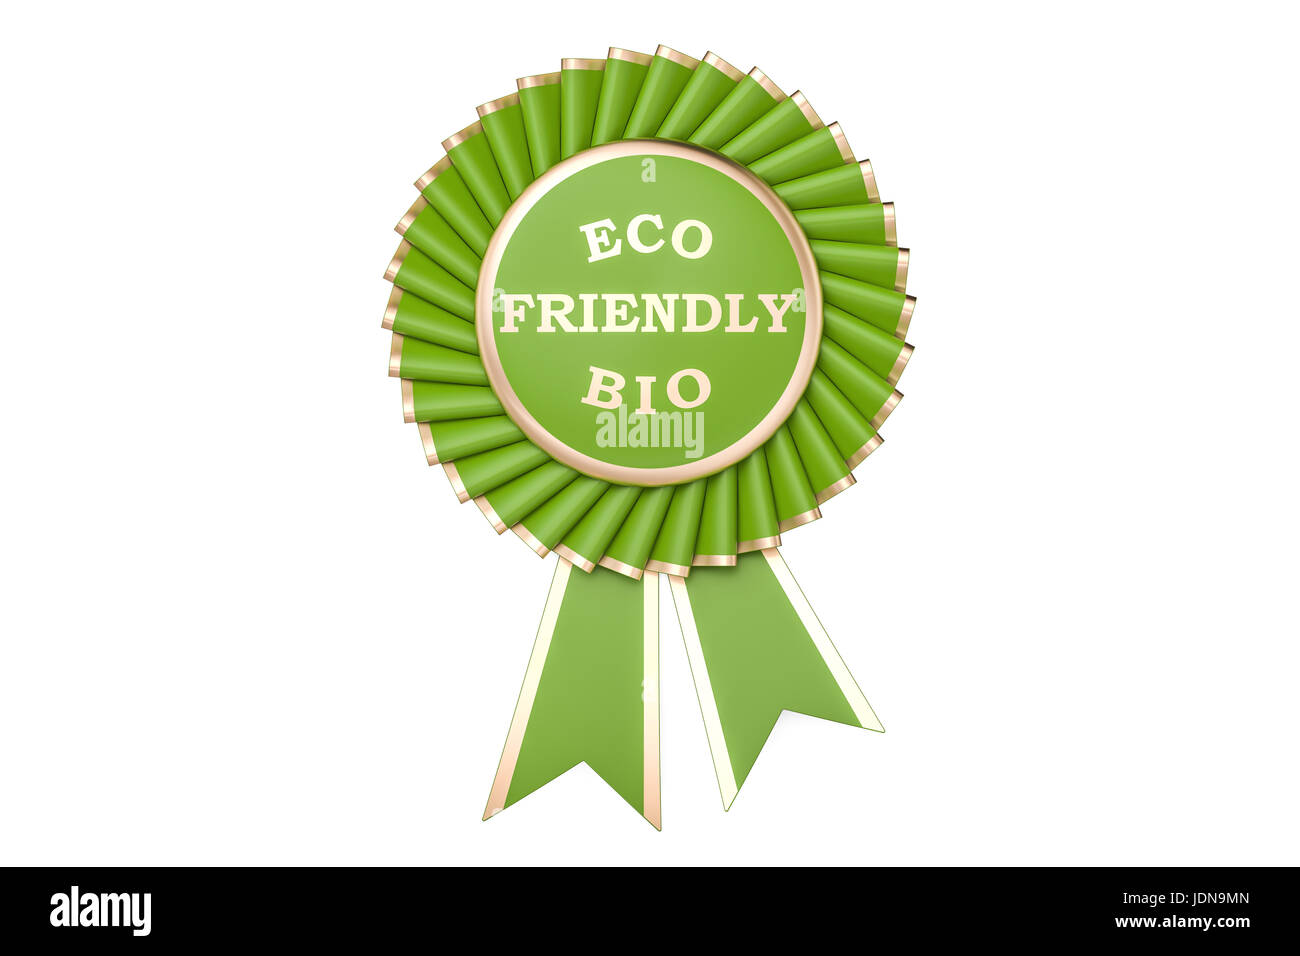 Eco friendly bio award, prize, medal or badge with ribbons. 3D rendering isolated on white background - Stock Image